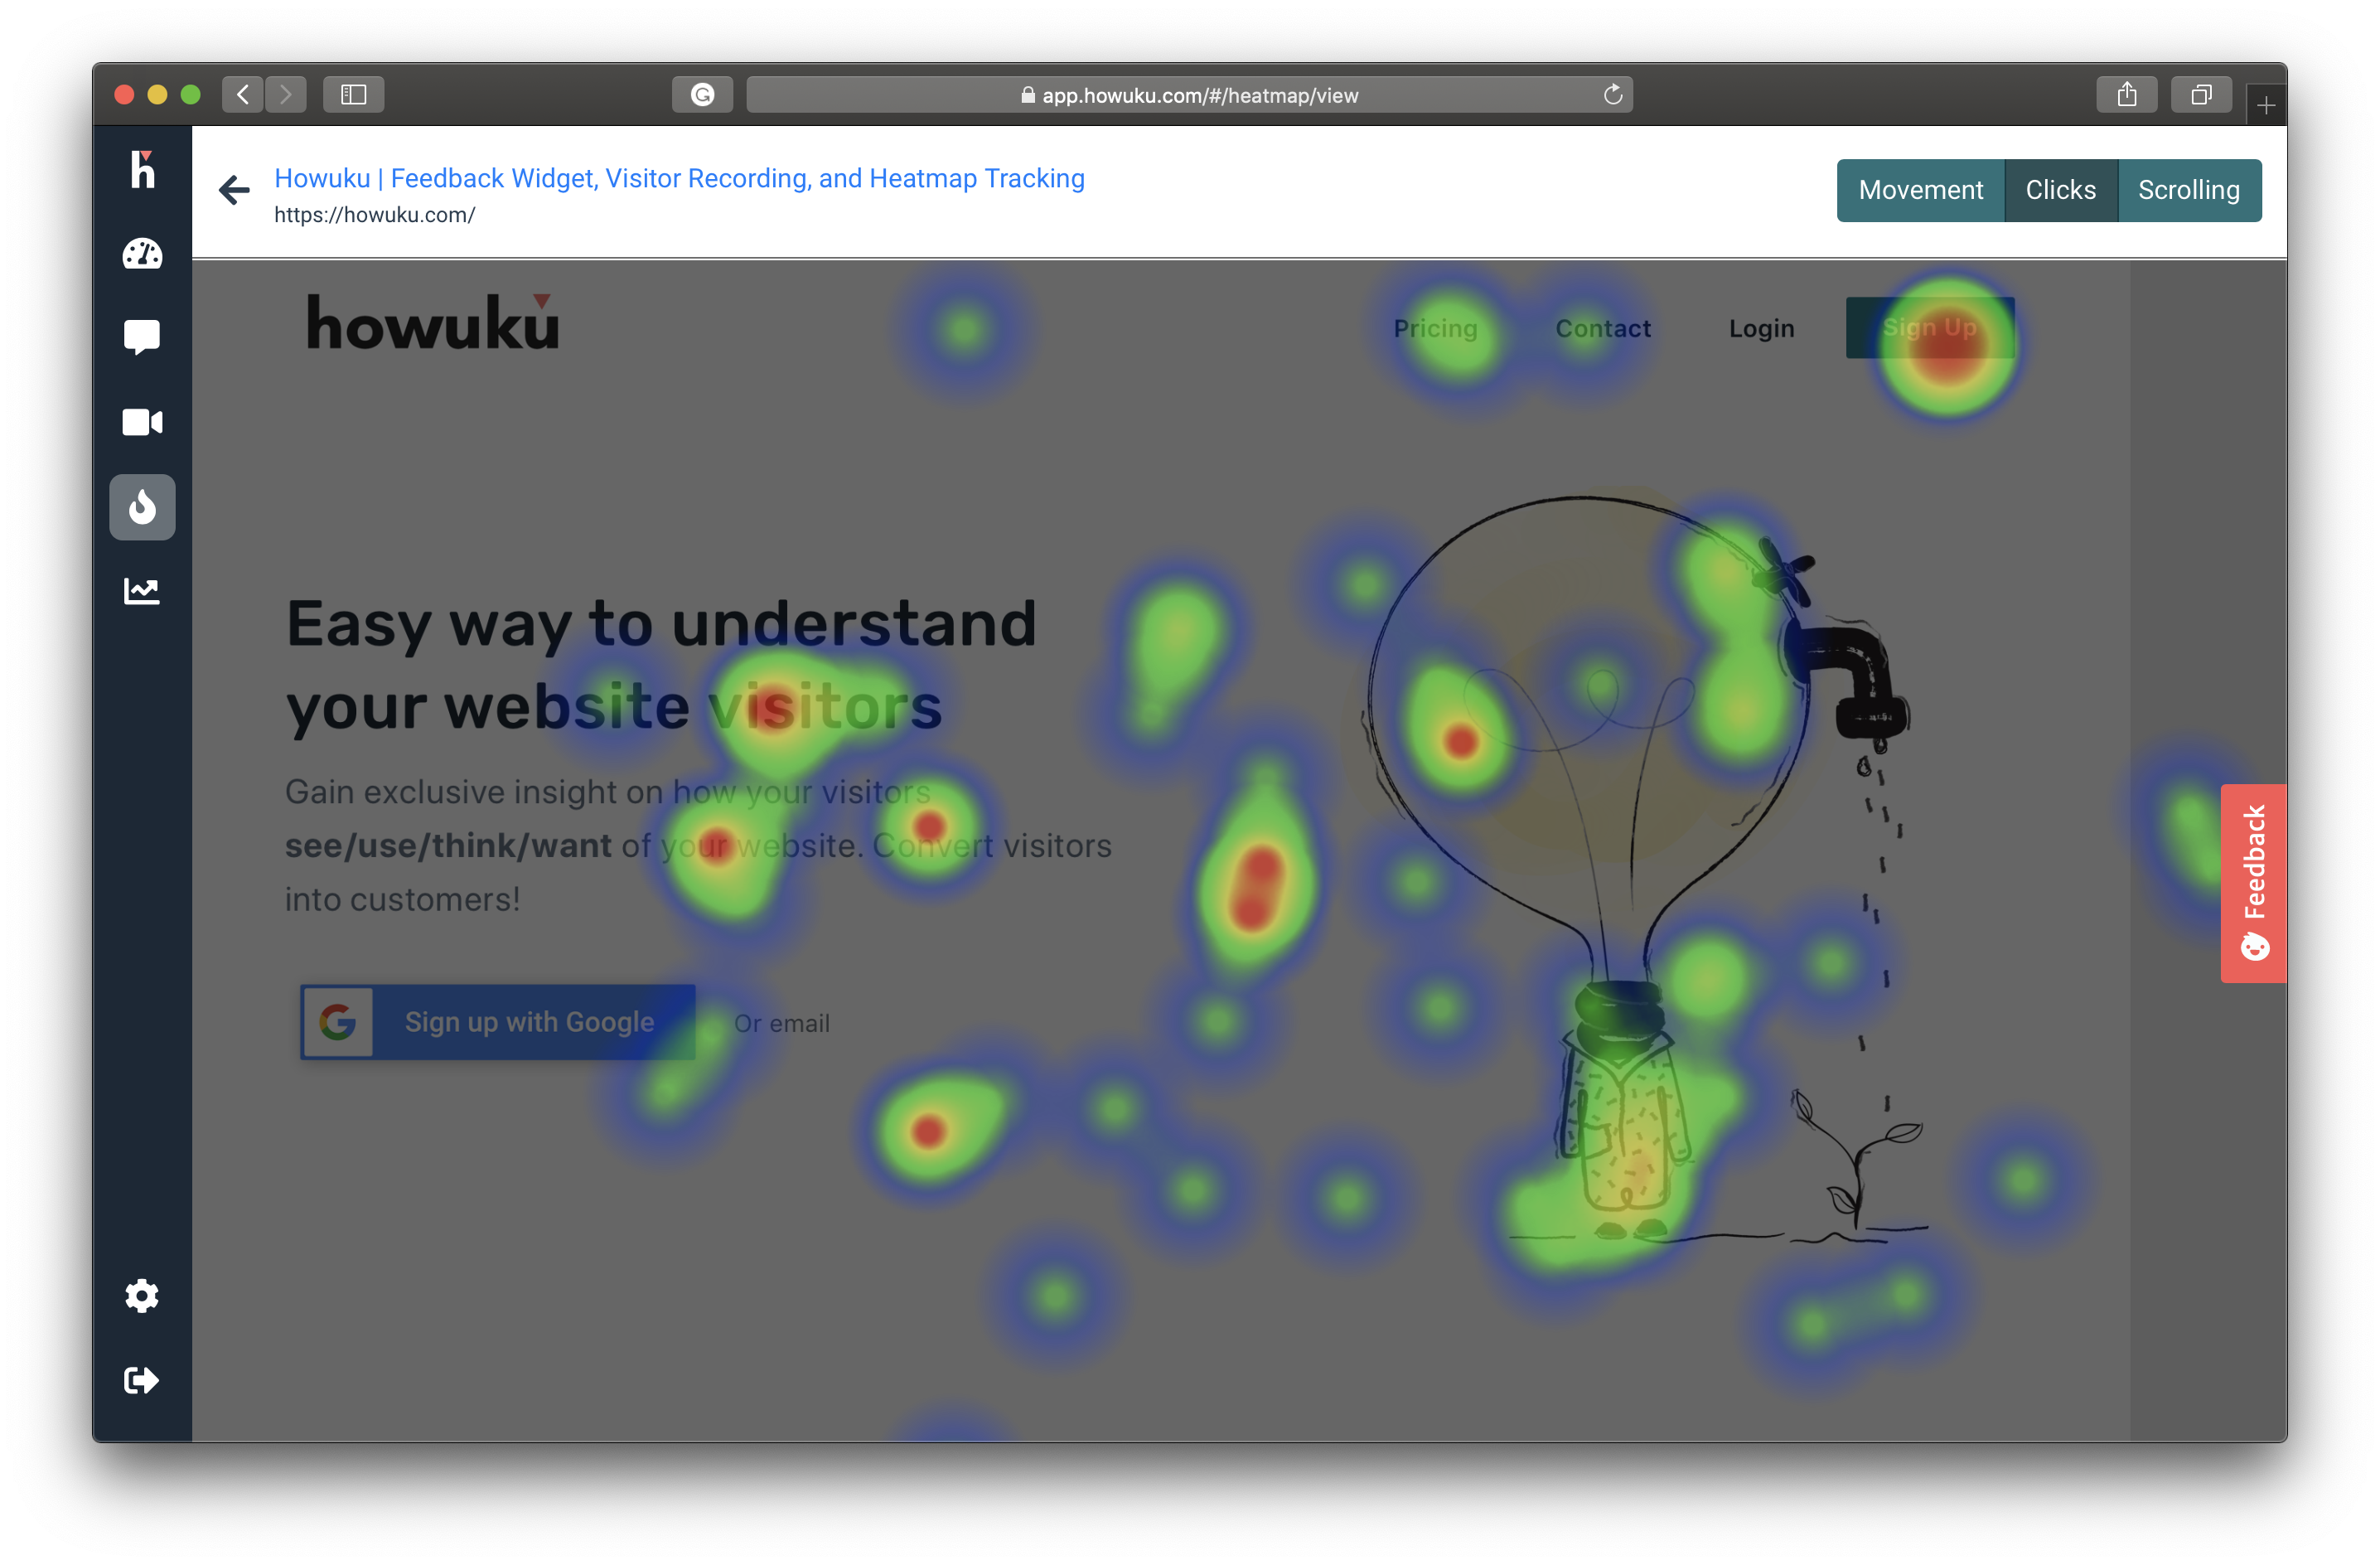 Reveal where website visitors click with heatmap tracking